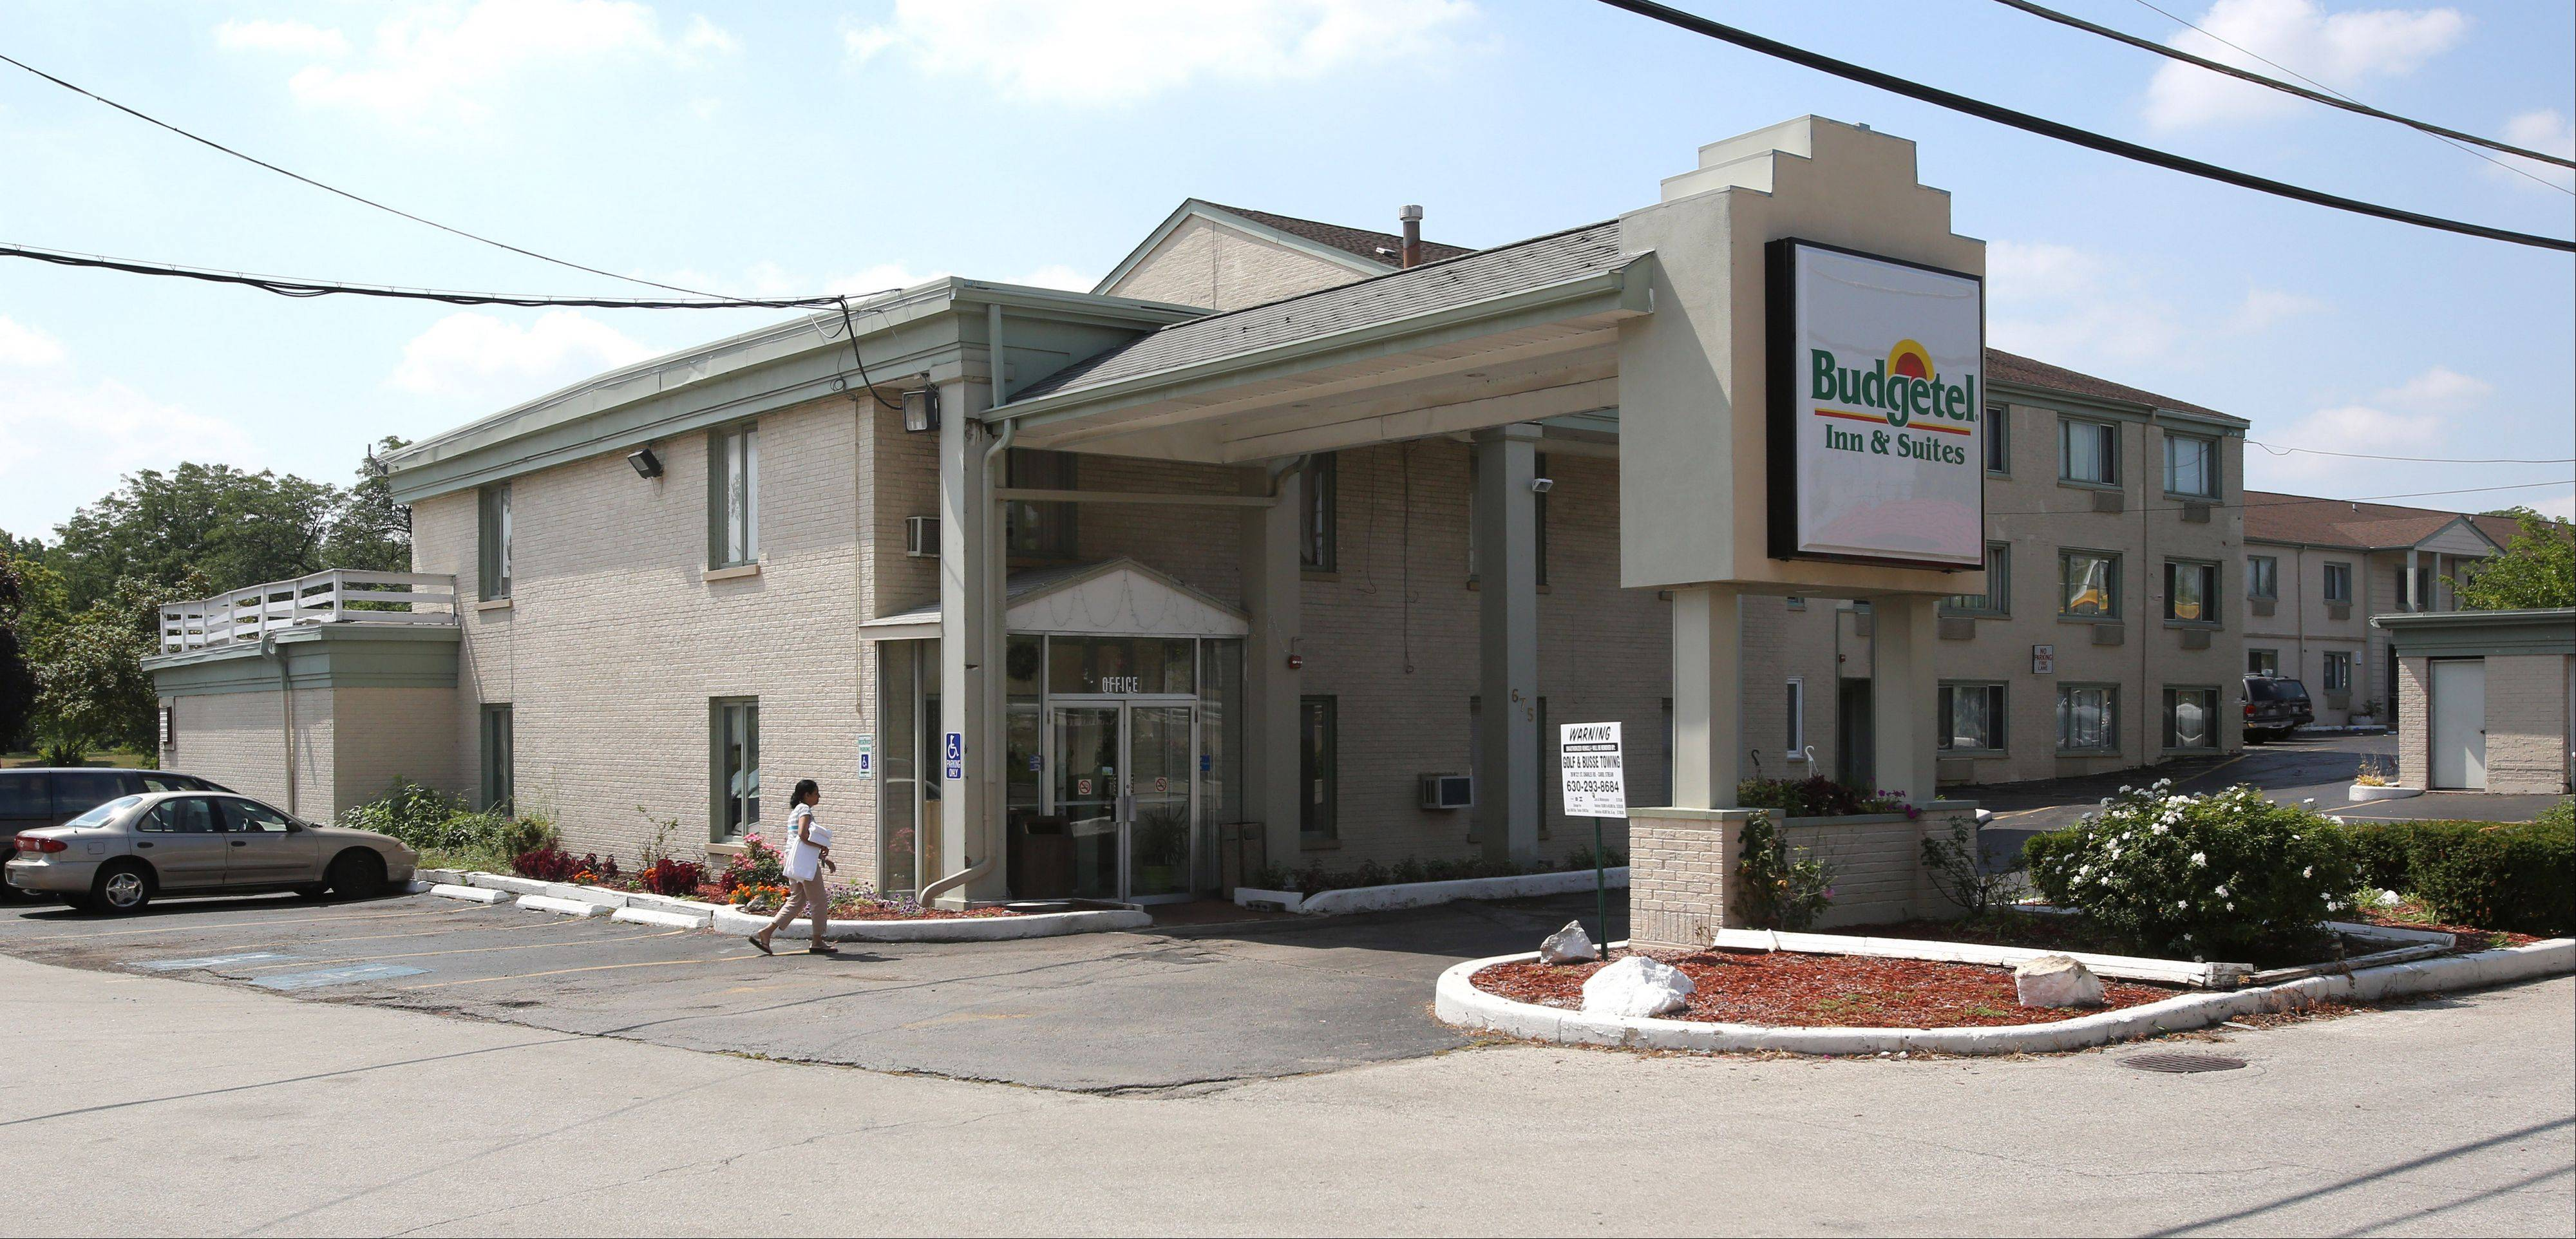 Glen Ellyn officials have proposed a license fee for two hotels located in town, including the America�s Best Inn/Budgetel Inn & Suites at 675 Roosevelt Road.